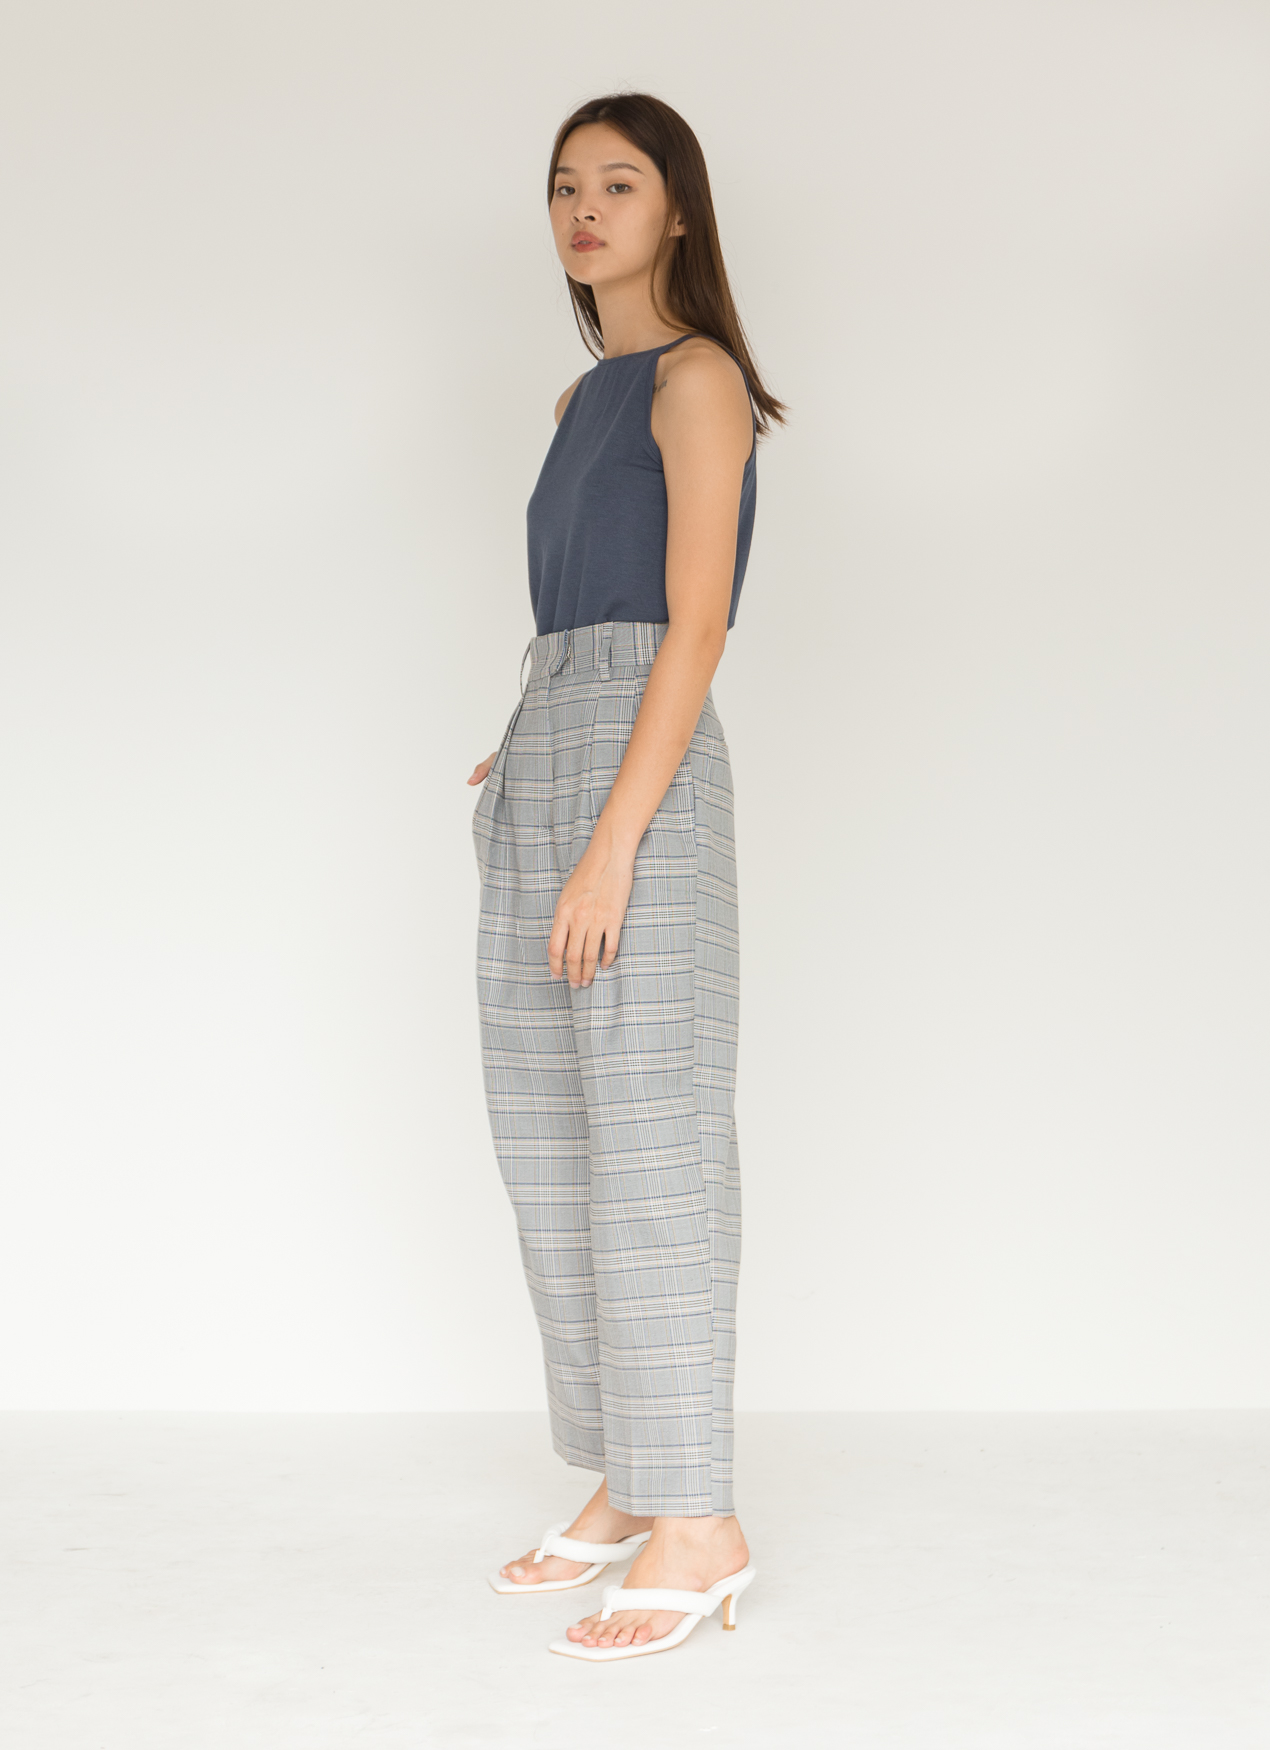 BOWN Calie Pants - Blue